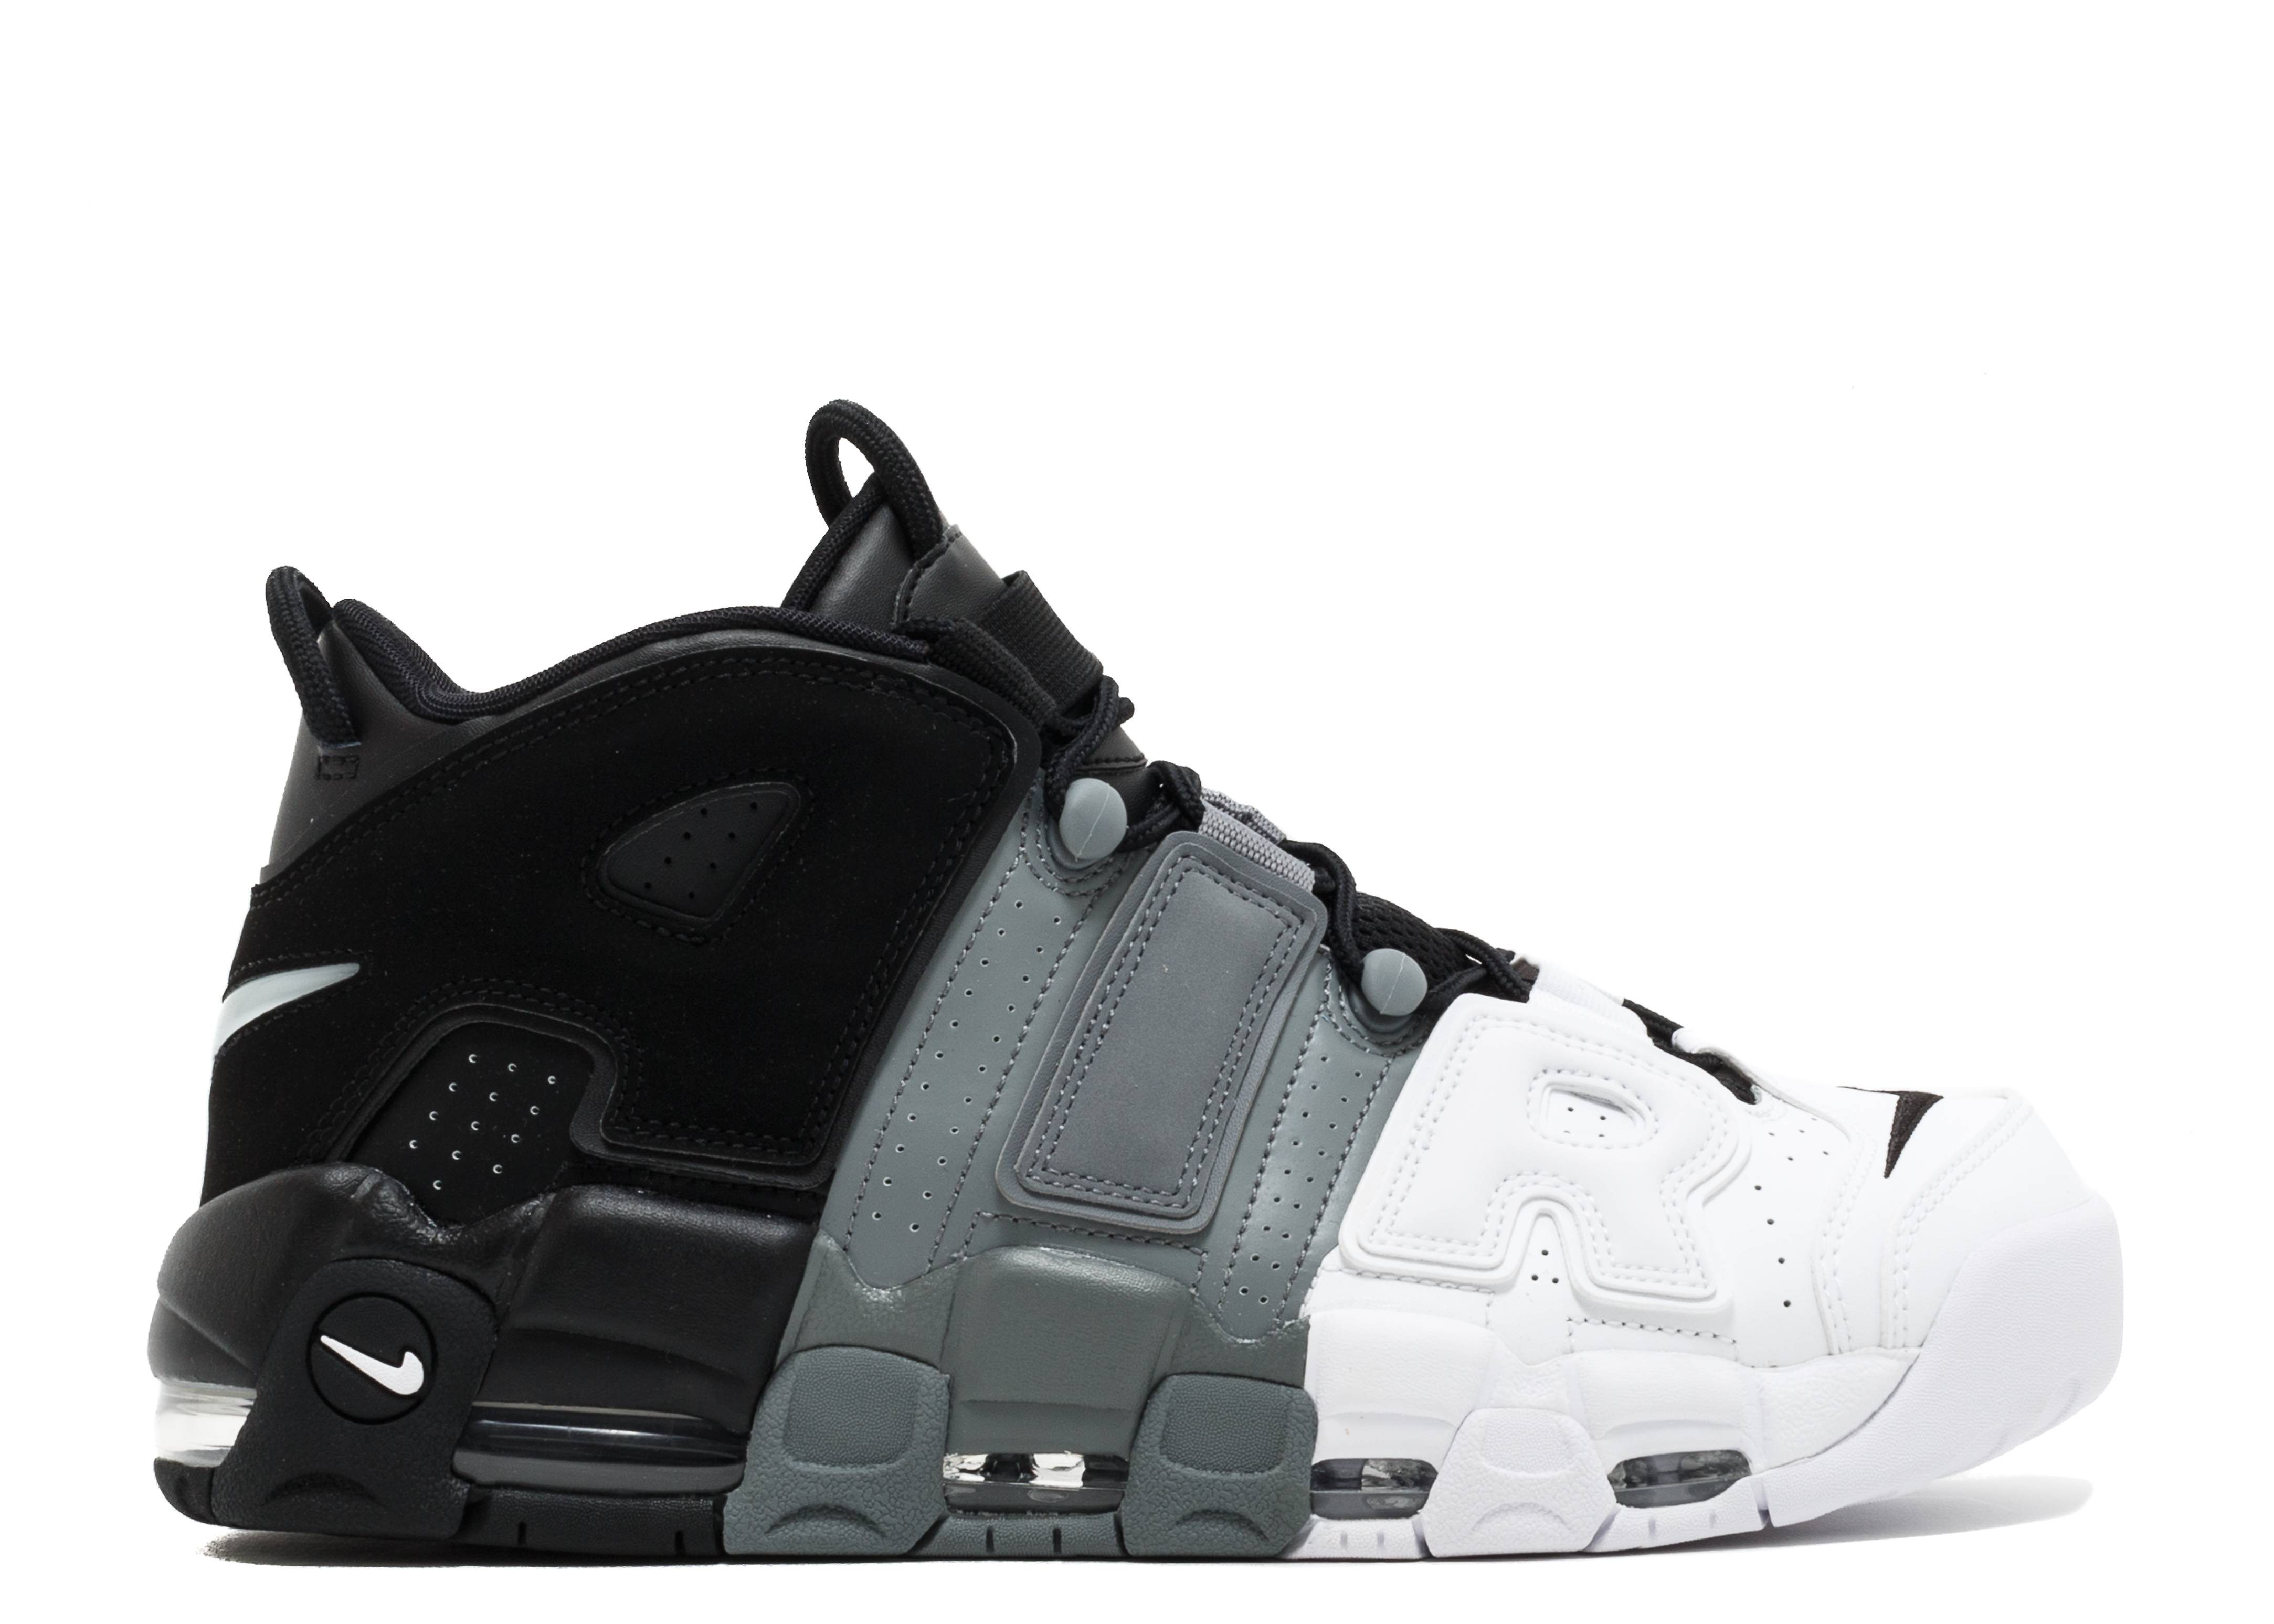 5d18f51155 Air More Uptempo '96 - Nike - 921948 002 - black/black-cool grey ...